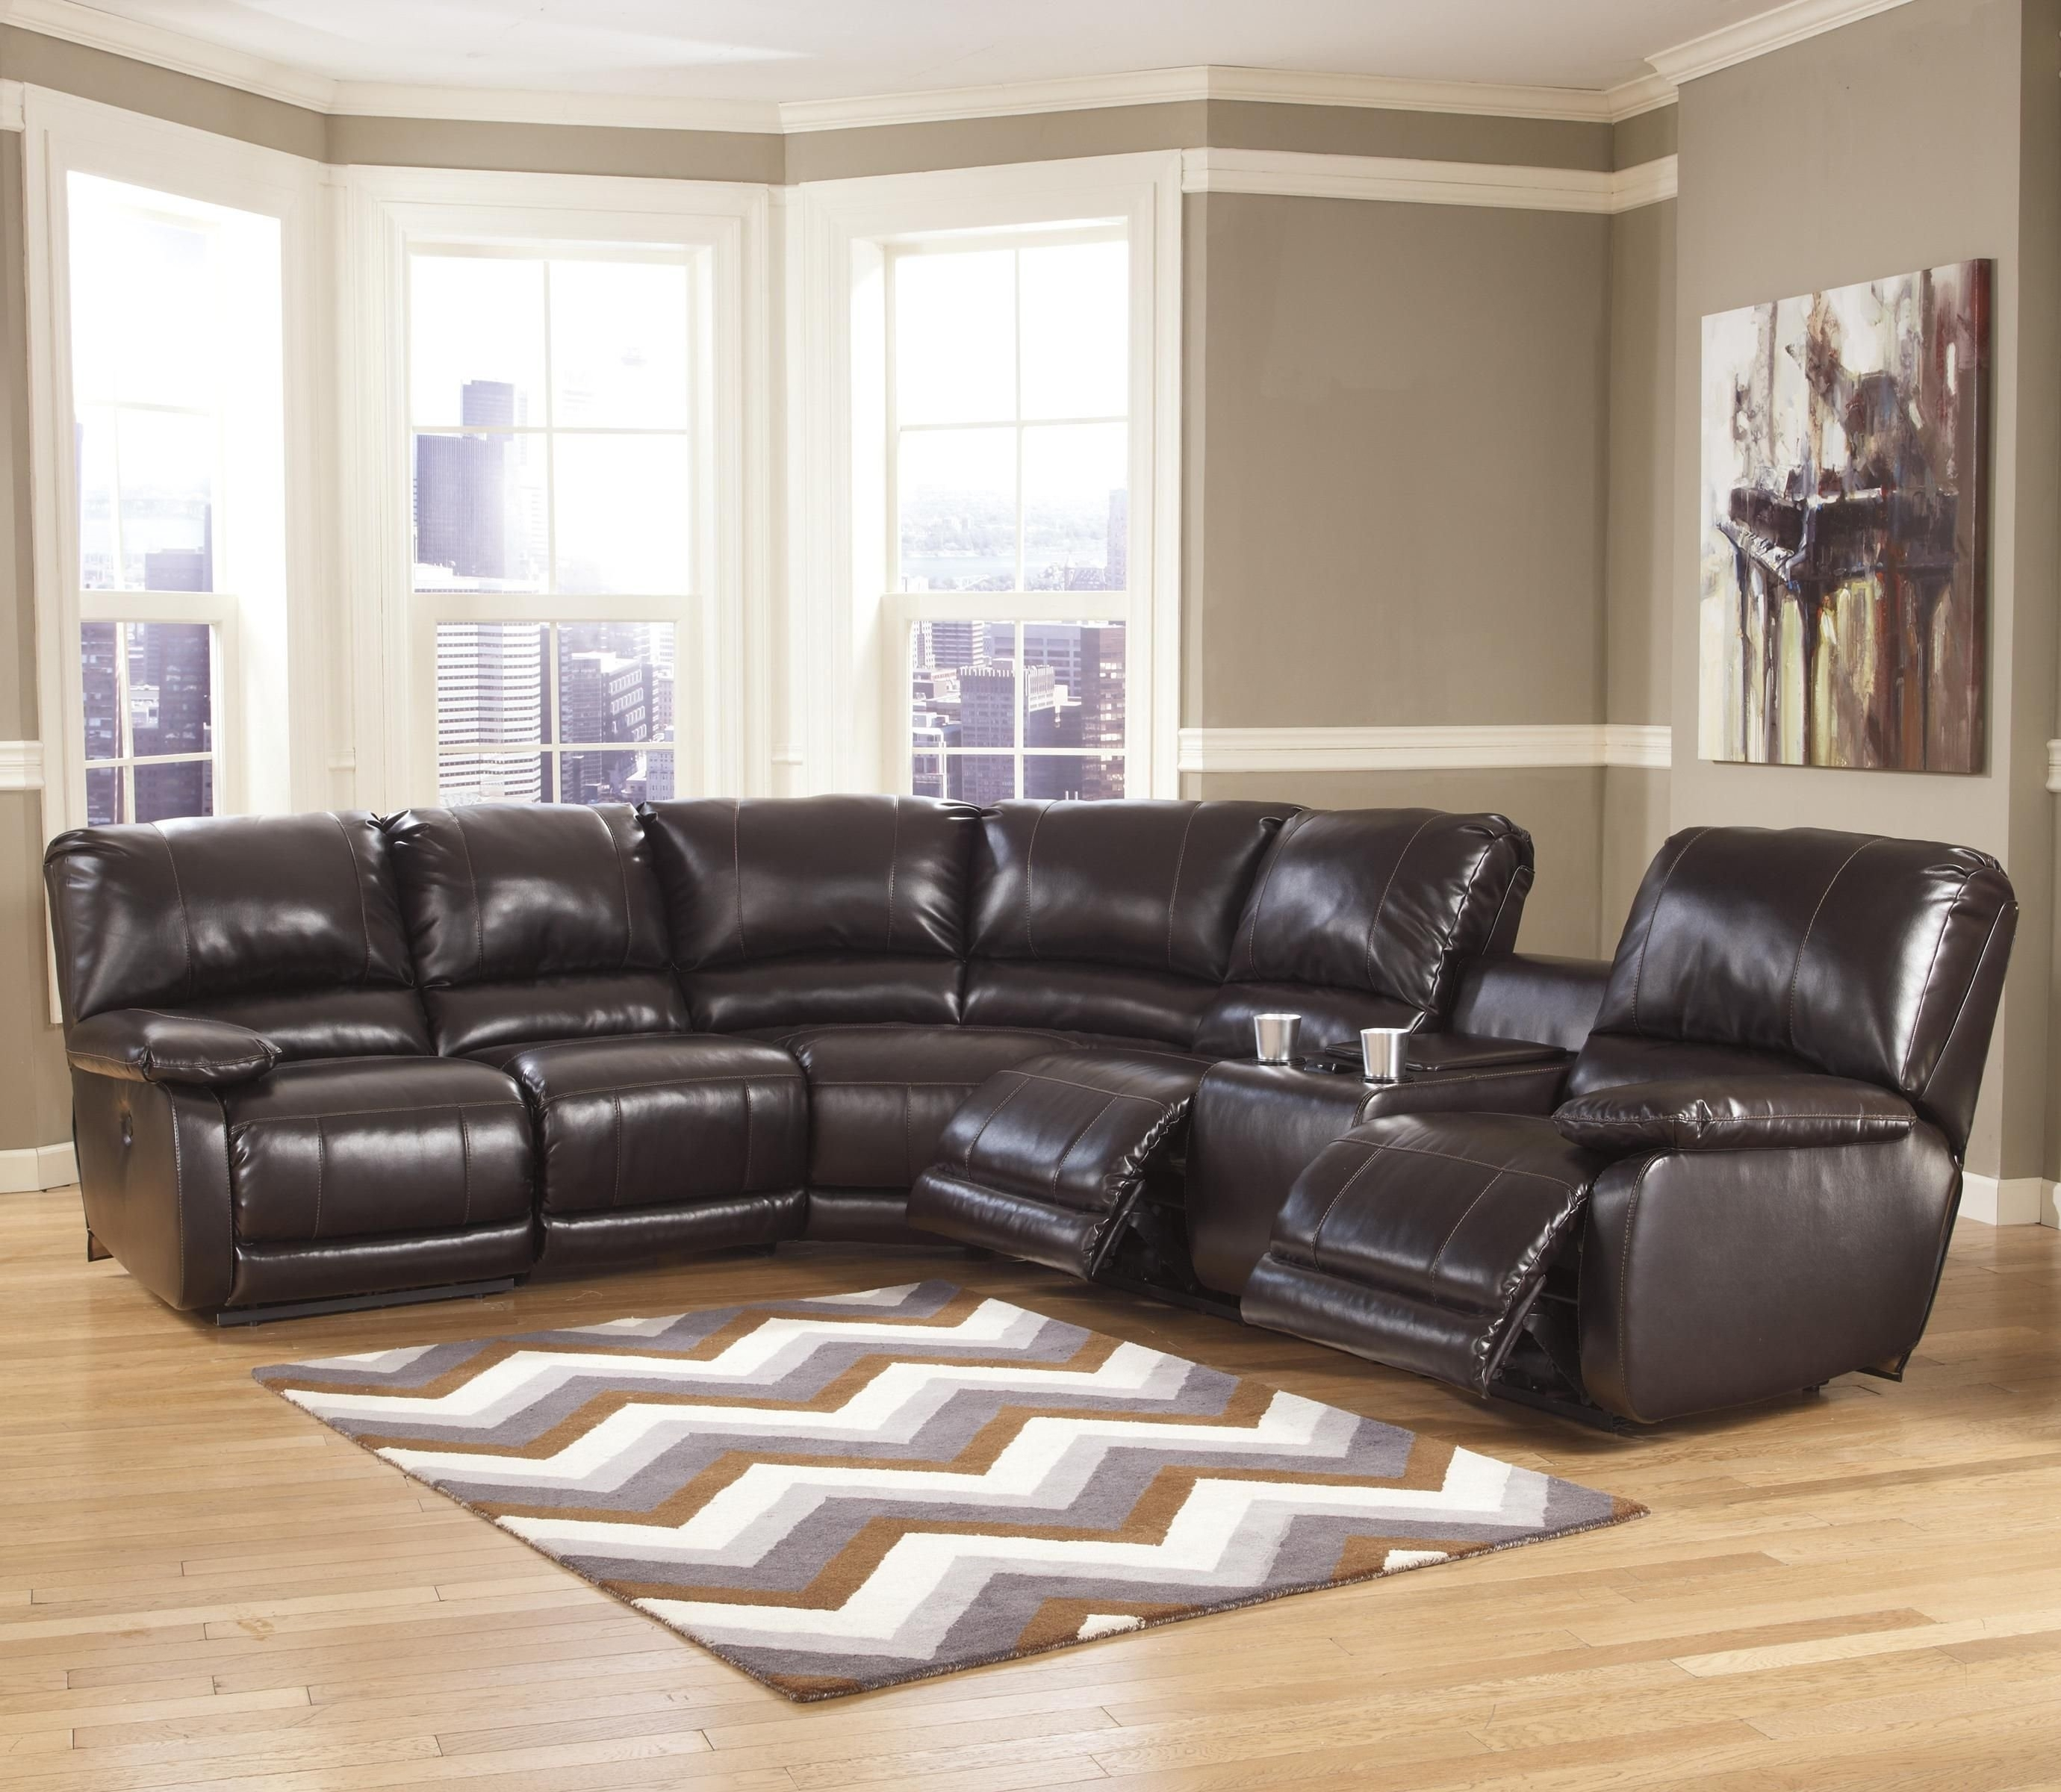 Fabulous 25 Power Reclining Sectional Sofa Favorite Throughout Calder Grey 6 Piece Manual Reclining Sectionals (Image 10 of 25)